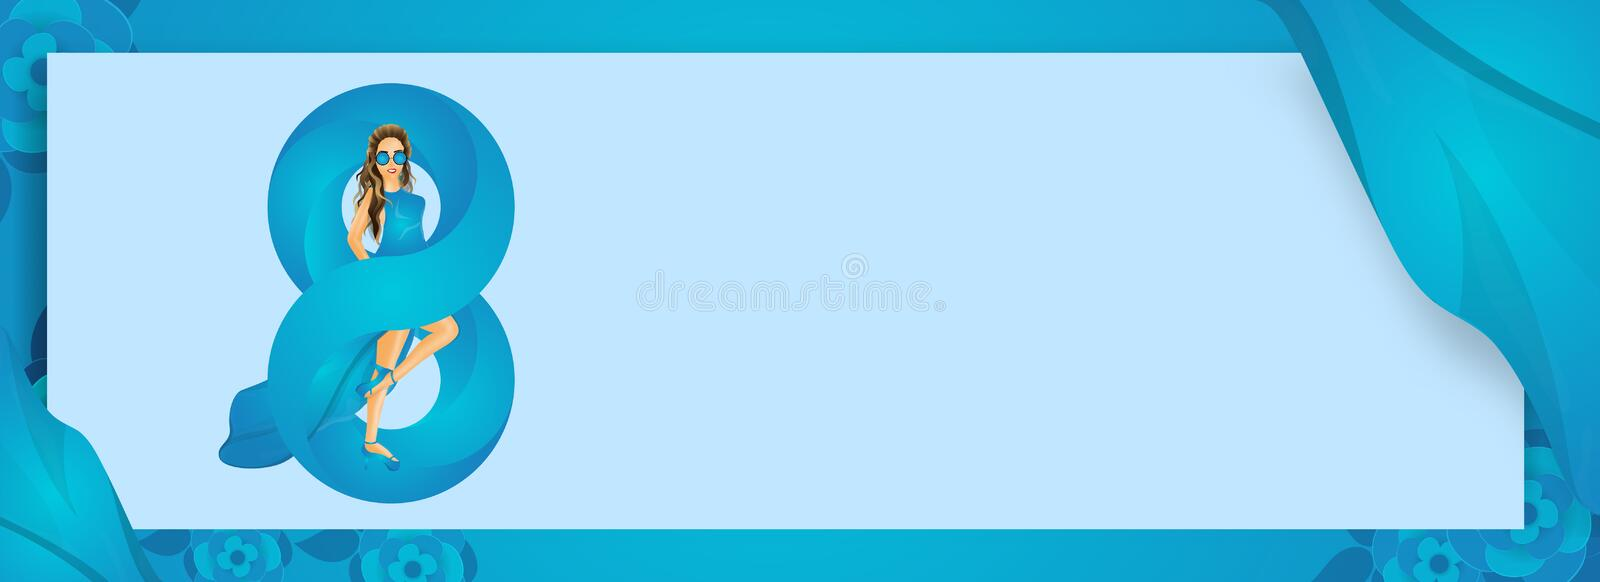 Stylish text 8 march with beautiful girl character on blue glossy background. royalty free illustration